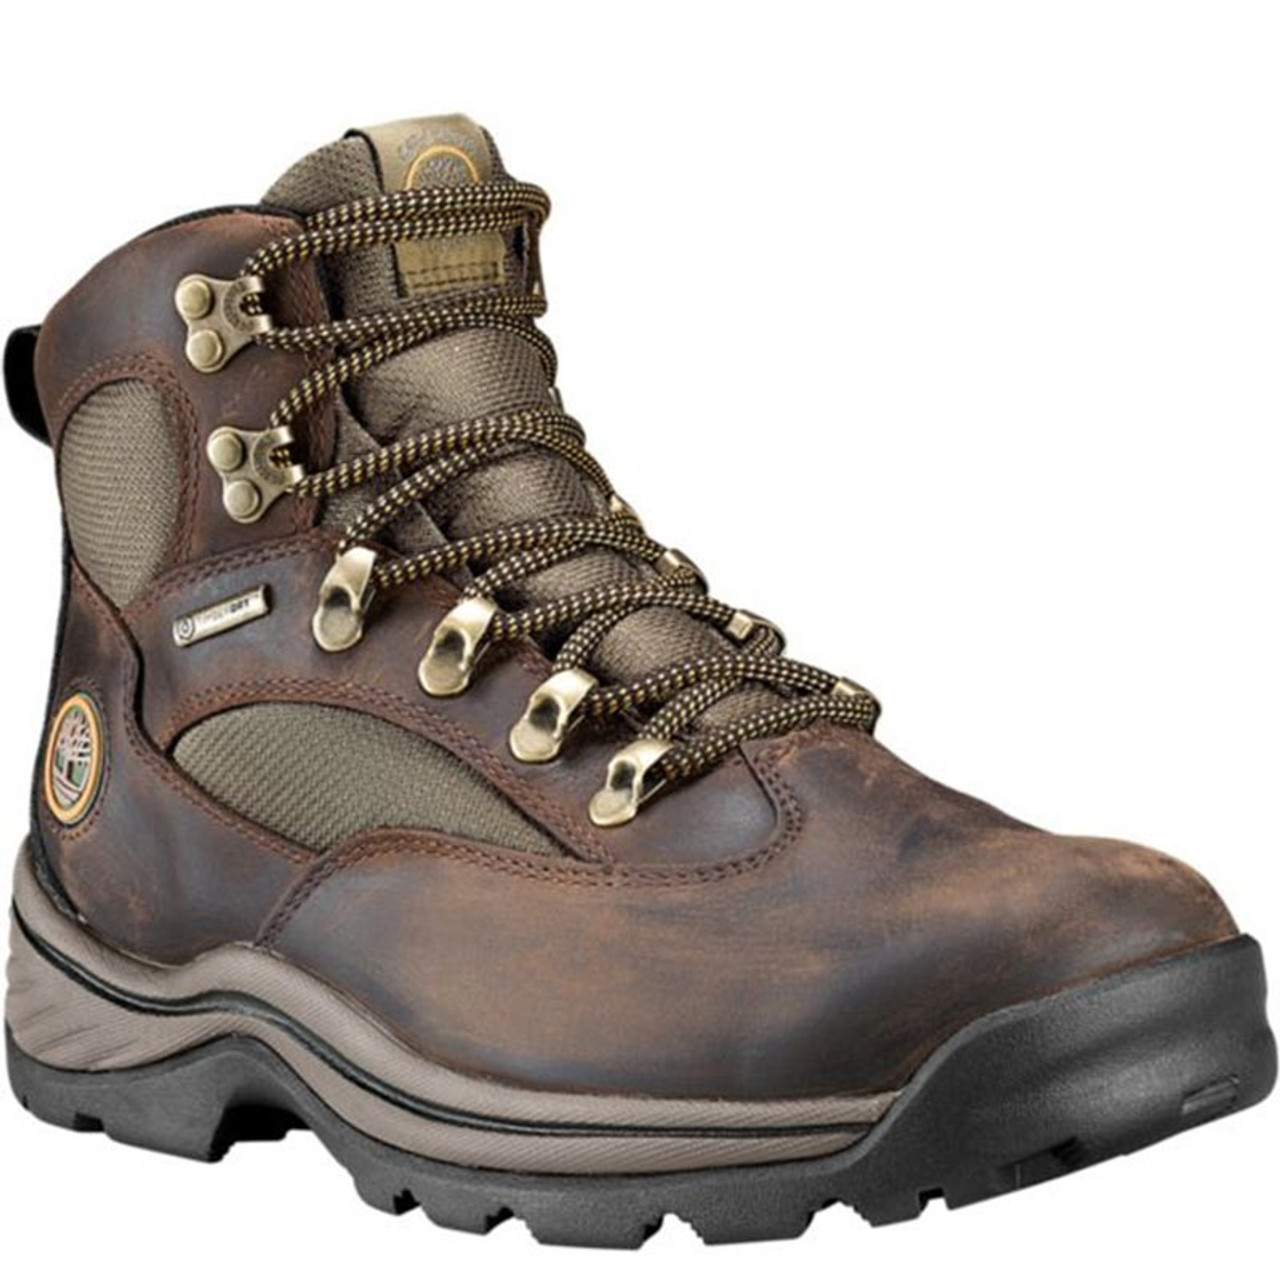 c443fec0c Timberland 15130 CHOCORUA TRAIL 2.0 Waterproof Hiking Boots - Family  Footwear Center